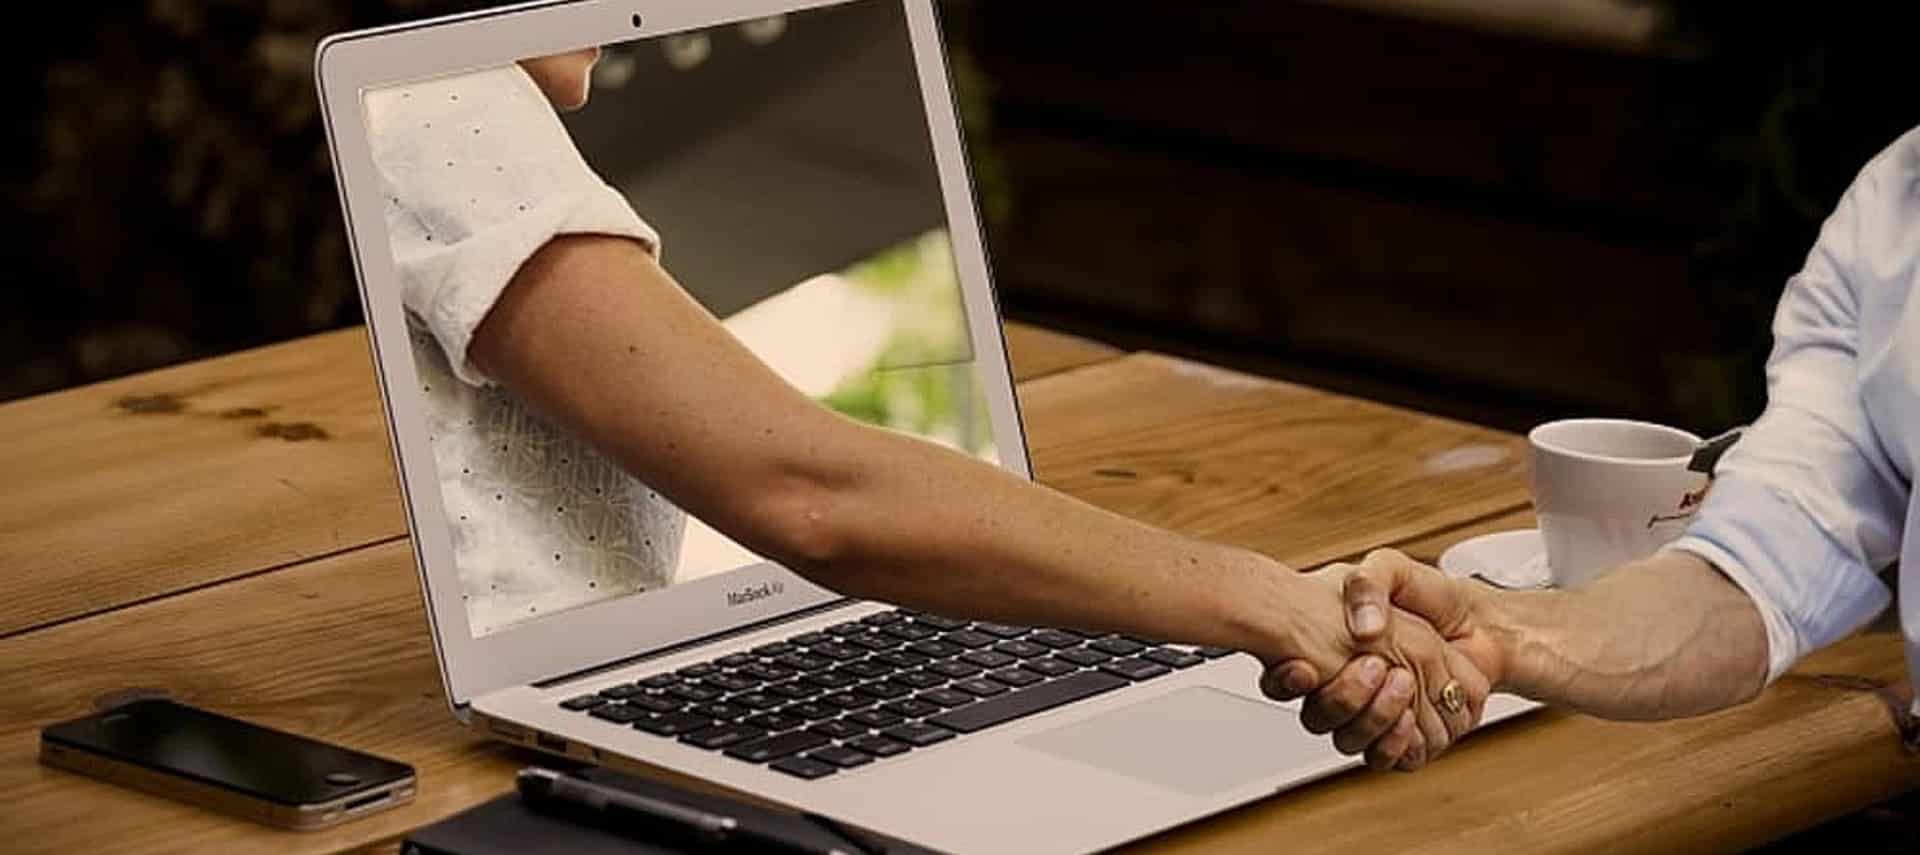 An arm coming out of a computer screen sitting on a brown table to shake the hand of a person in a blue shirt.